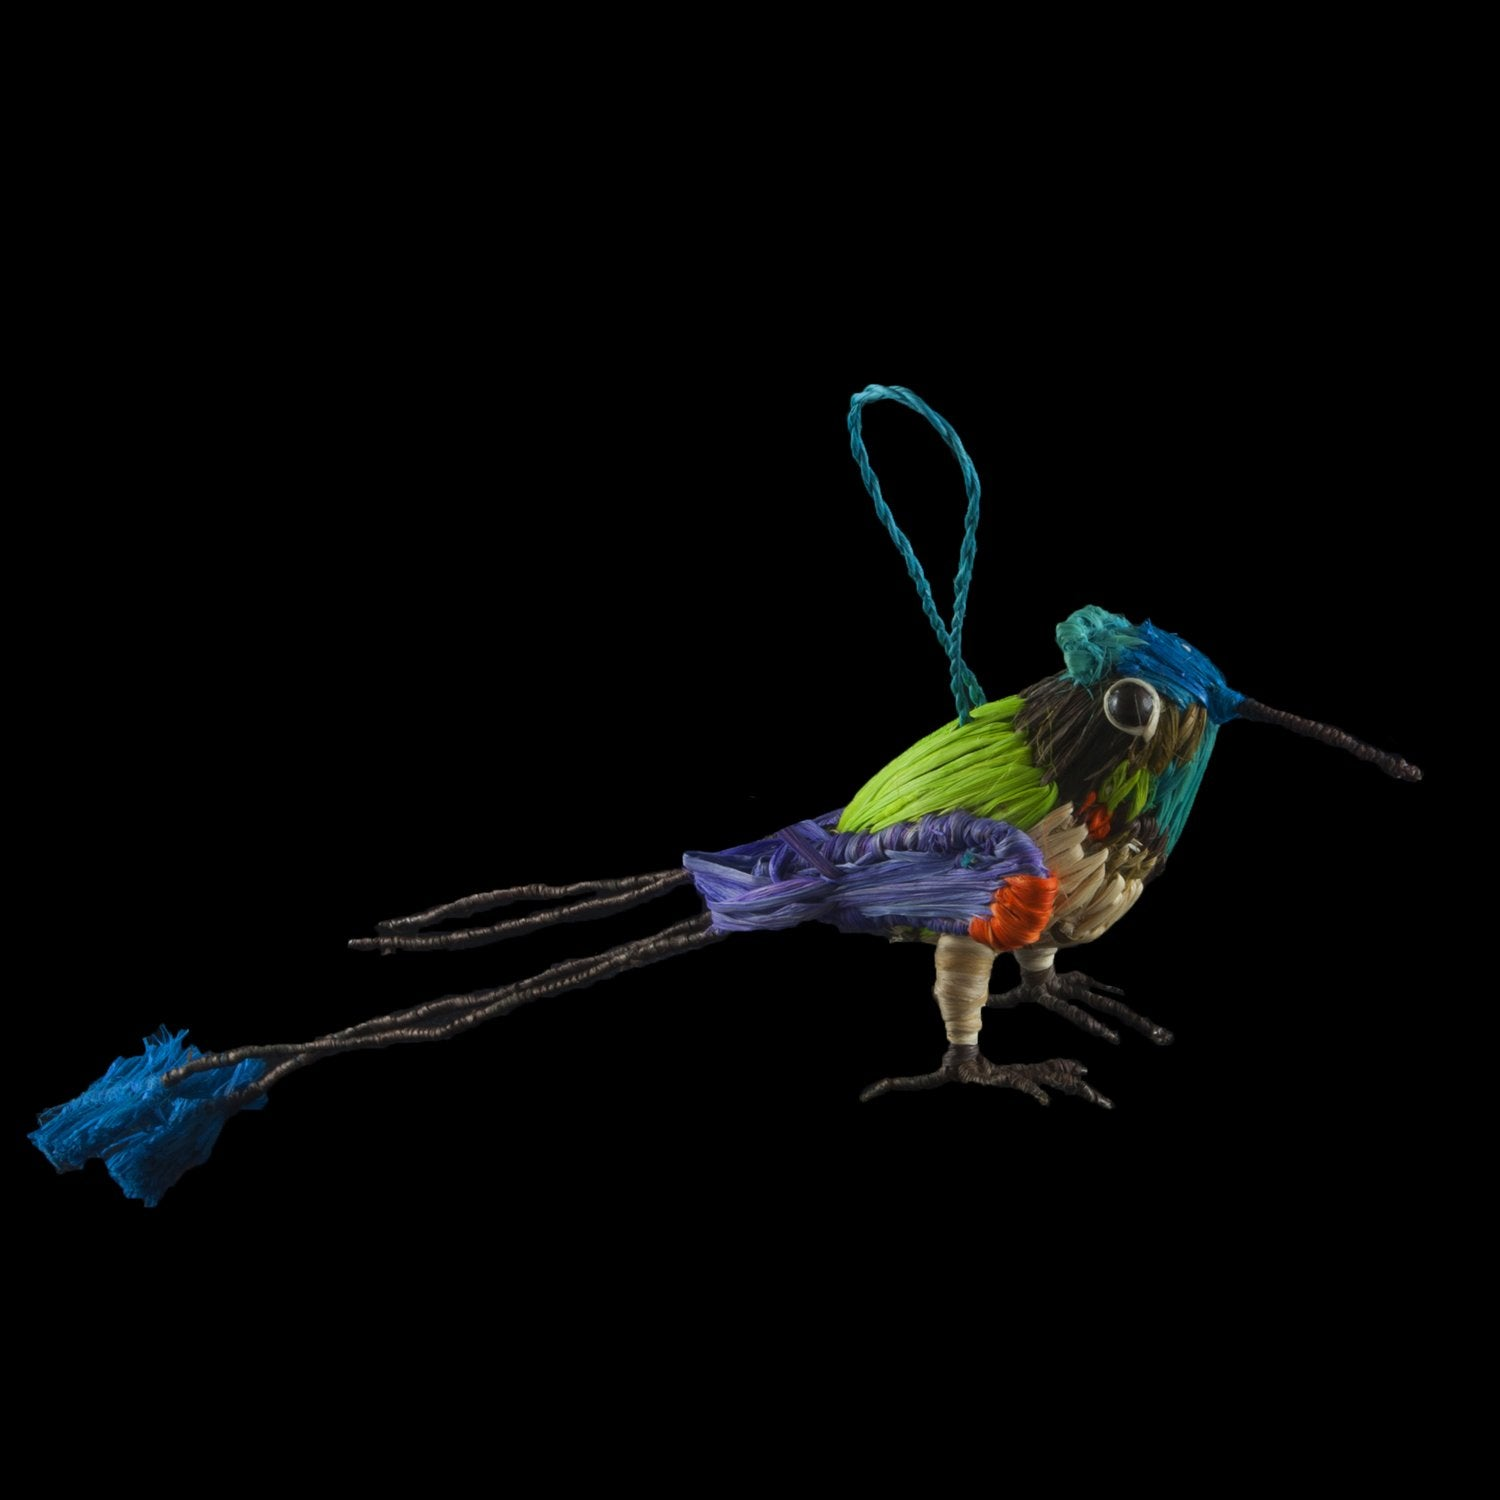 FAIR -TRADE CHRISTMAS TREE ORNAMENT - MARVELOUS SPATULE TAIL HUMMINGBIRD - WOVEN BY PERUVIAN AMAZON ARTISAN